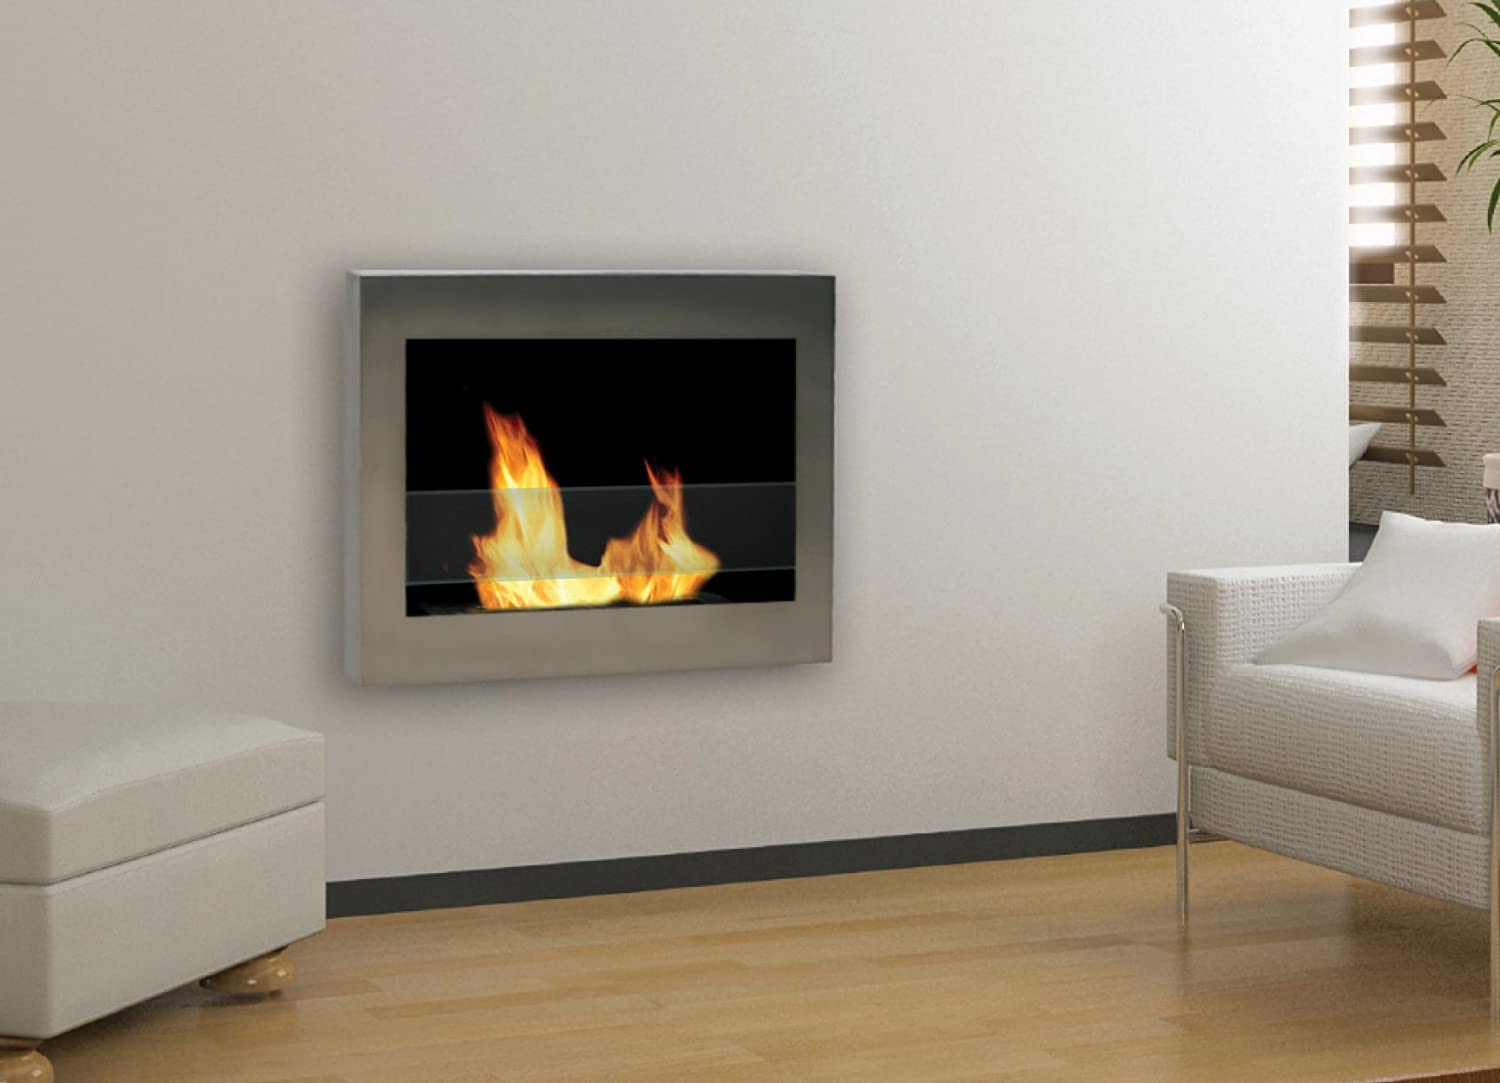 Buy Anywhere Fireplace - SoHo Stainless Steel Wall Mount Fireplace: Gel & Ethanol Fireplaces - Amazon.com ? FREE DELIVERY possible on eligible purchases